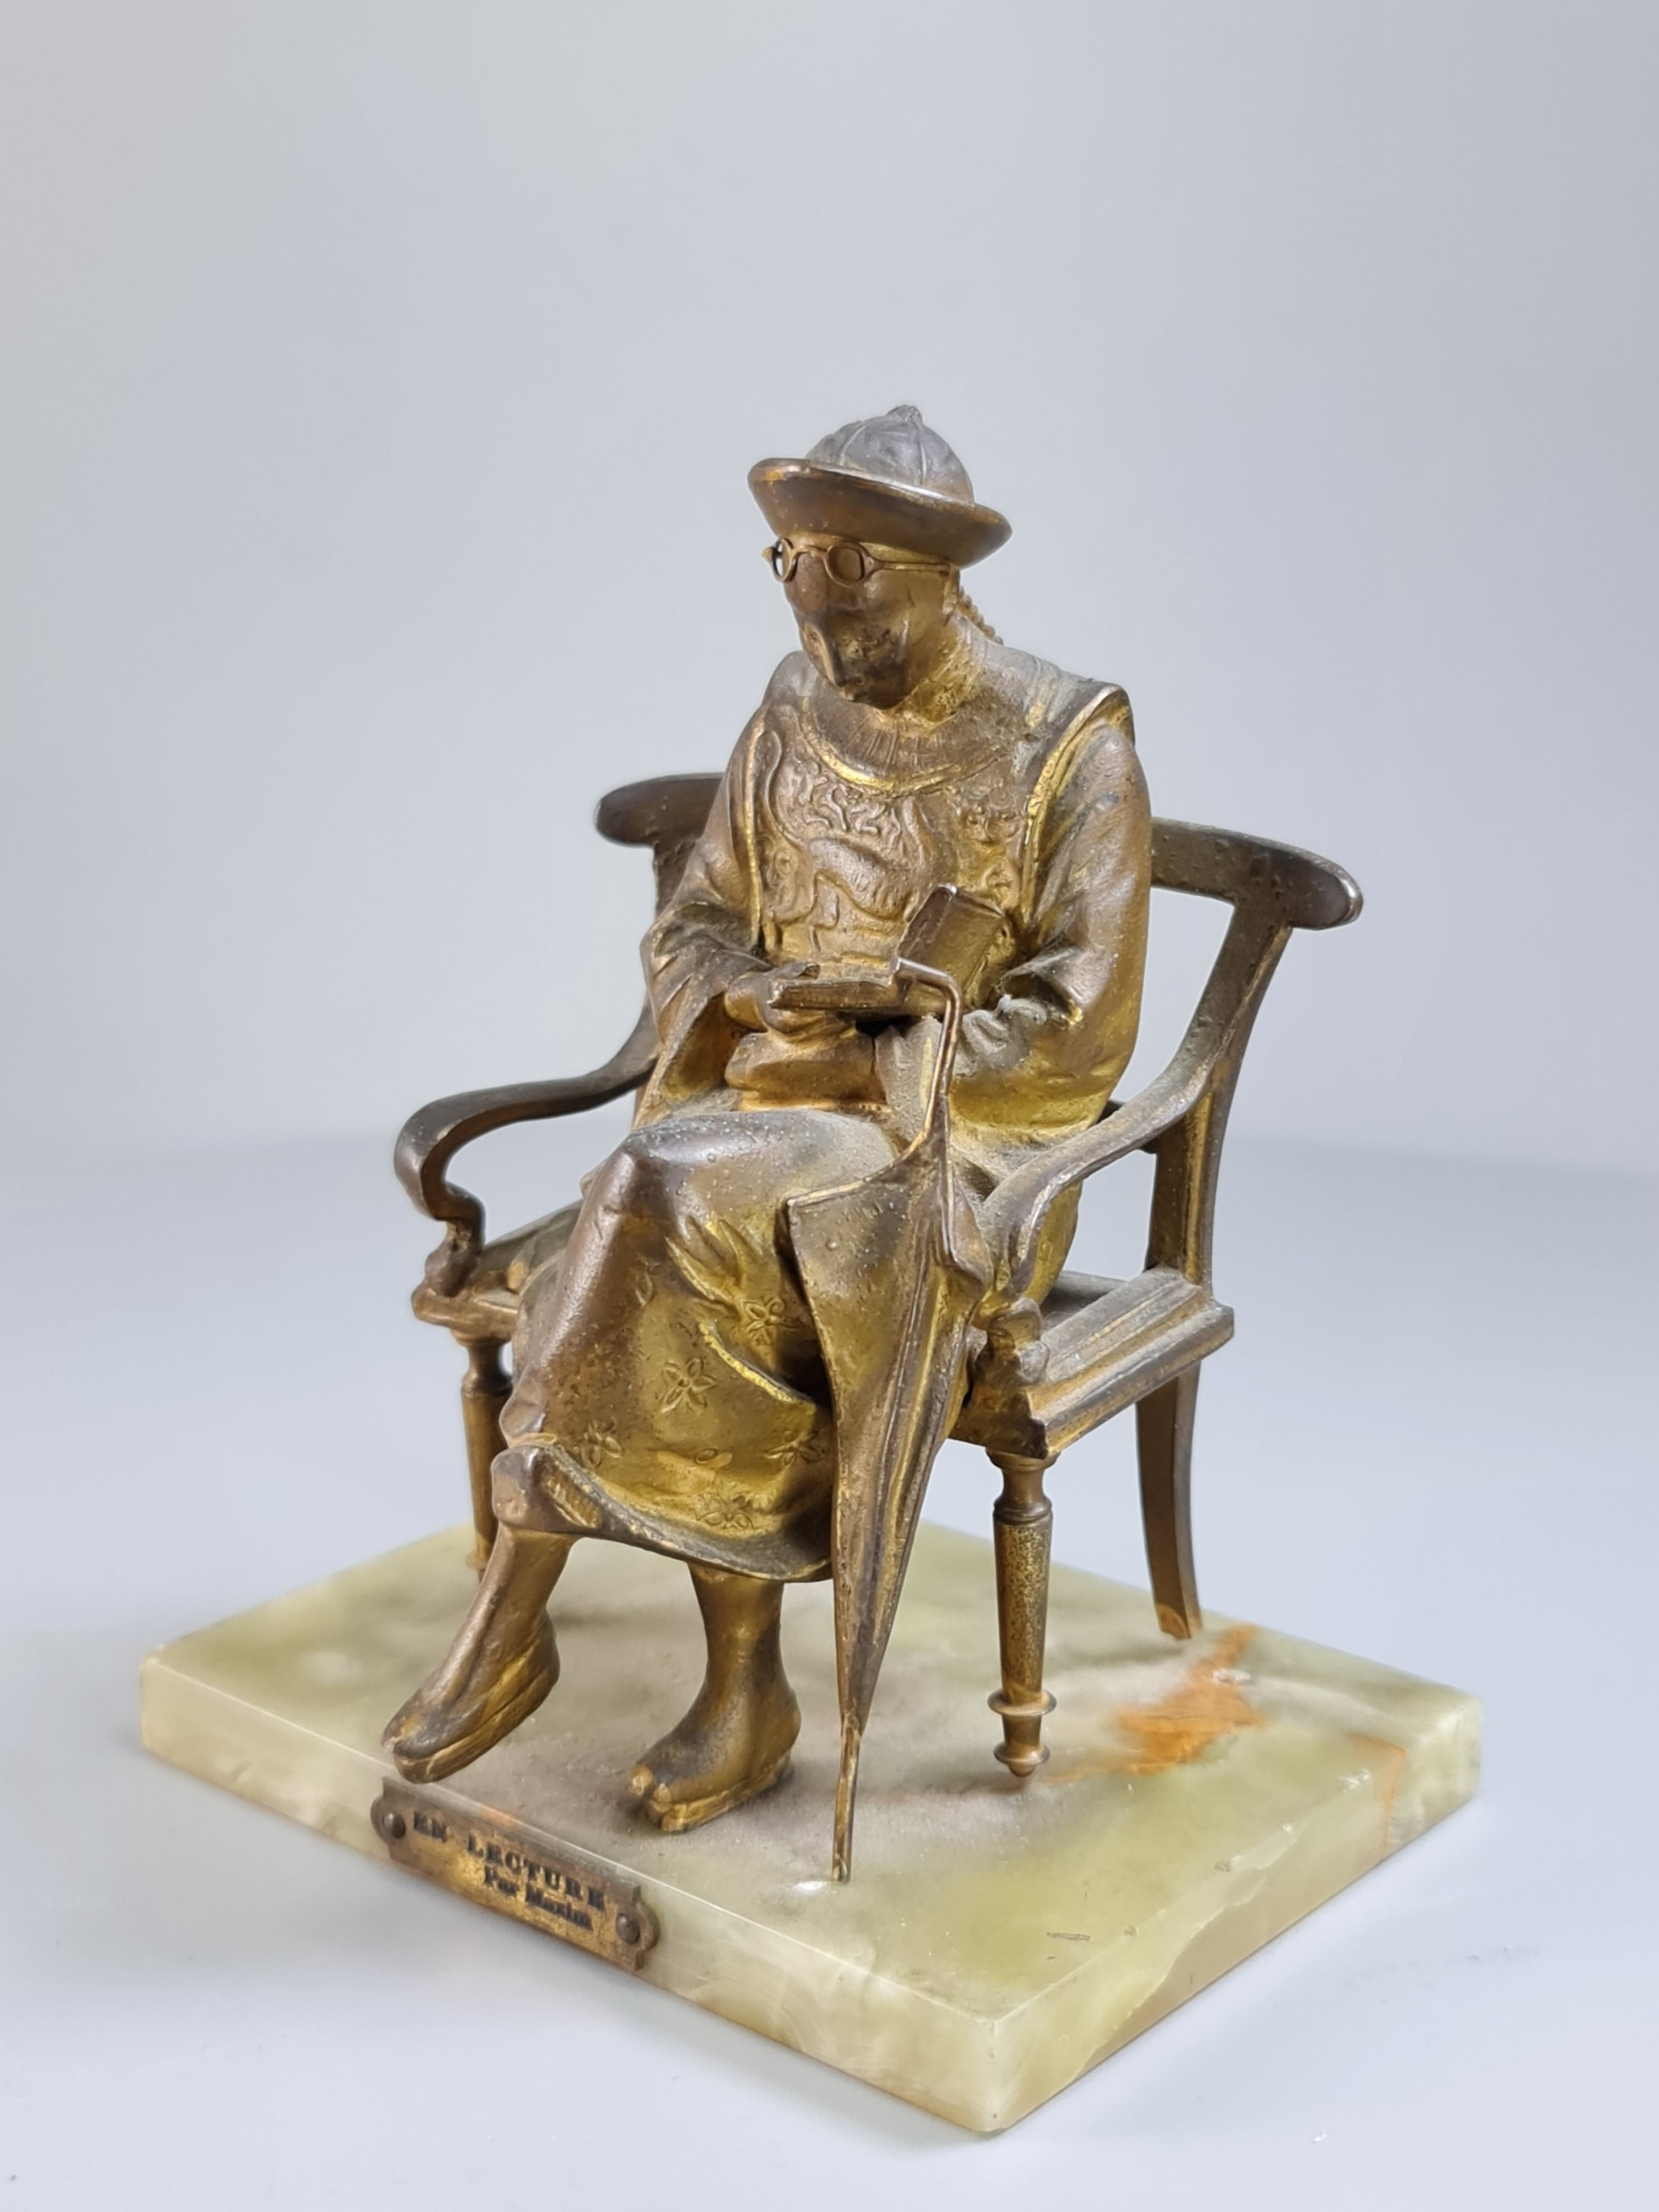 french gilt bronze seated figure 'en lecture' on onyx base c1900